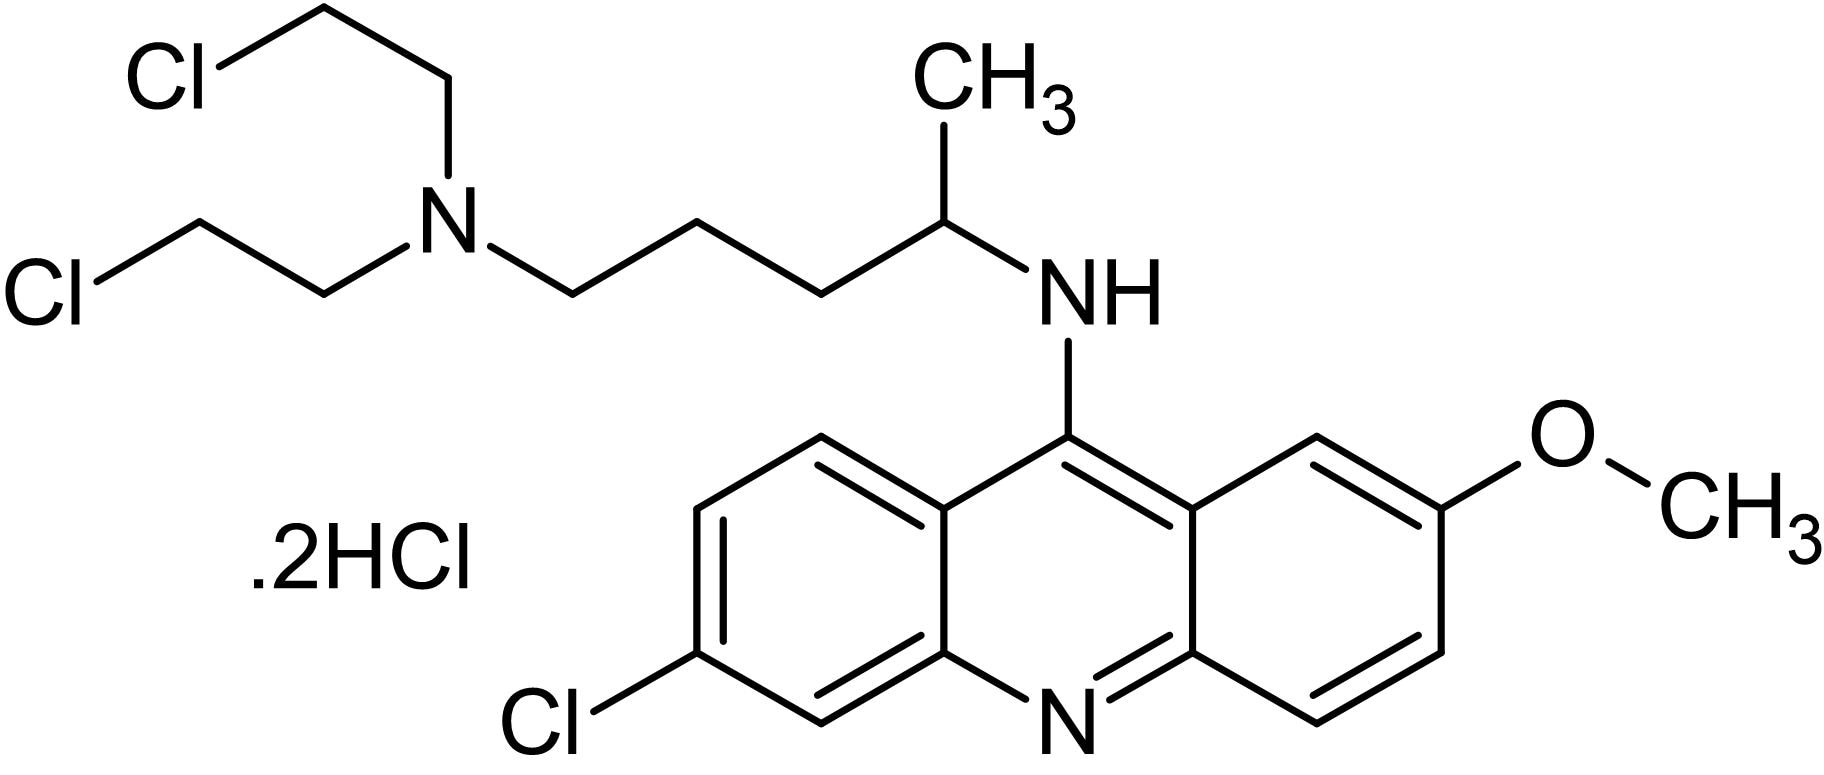 Chemical Structure - Quinacrine mustard dihydrochloride, Fluorescent probe for labeling chromosomal DNA (ab145375)